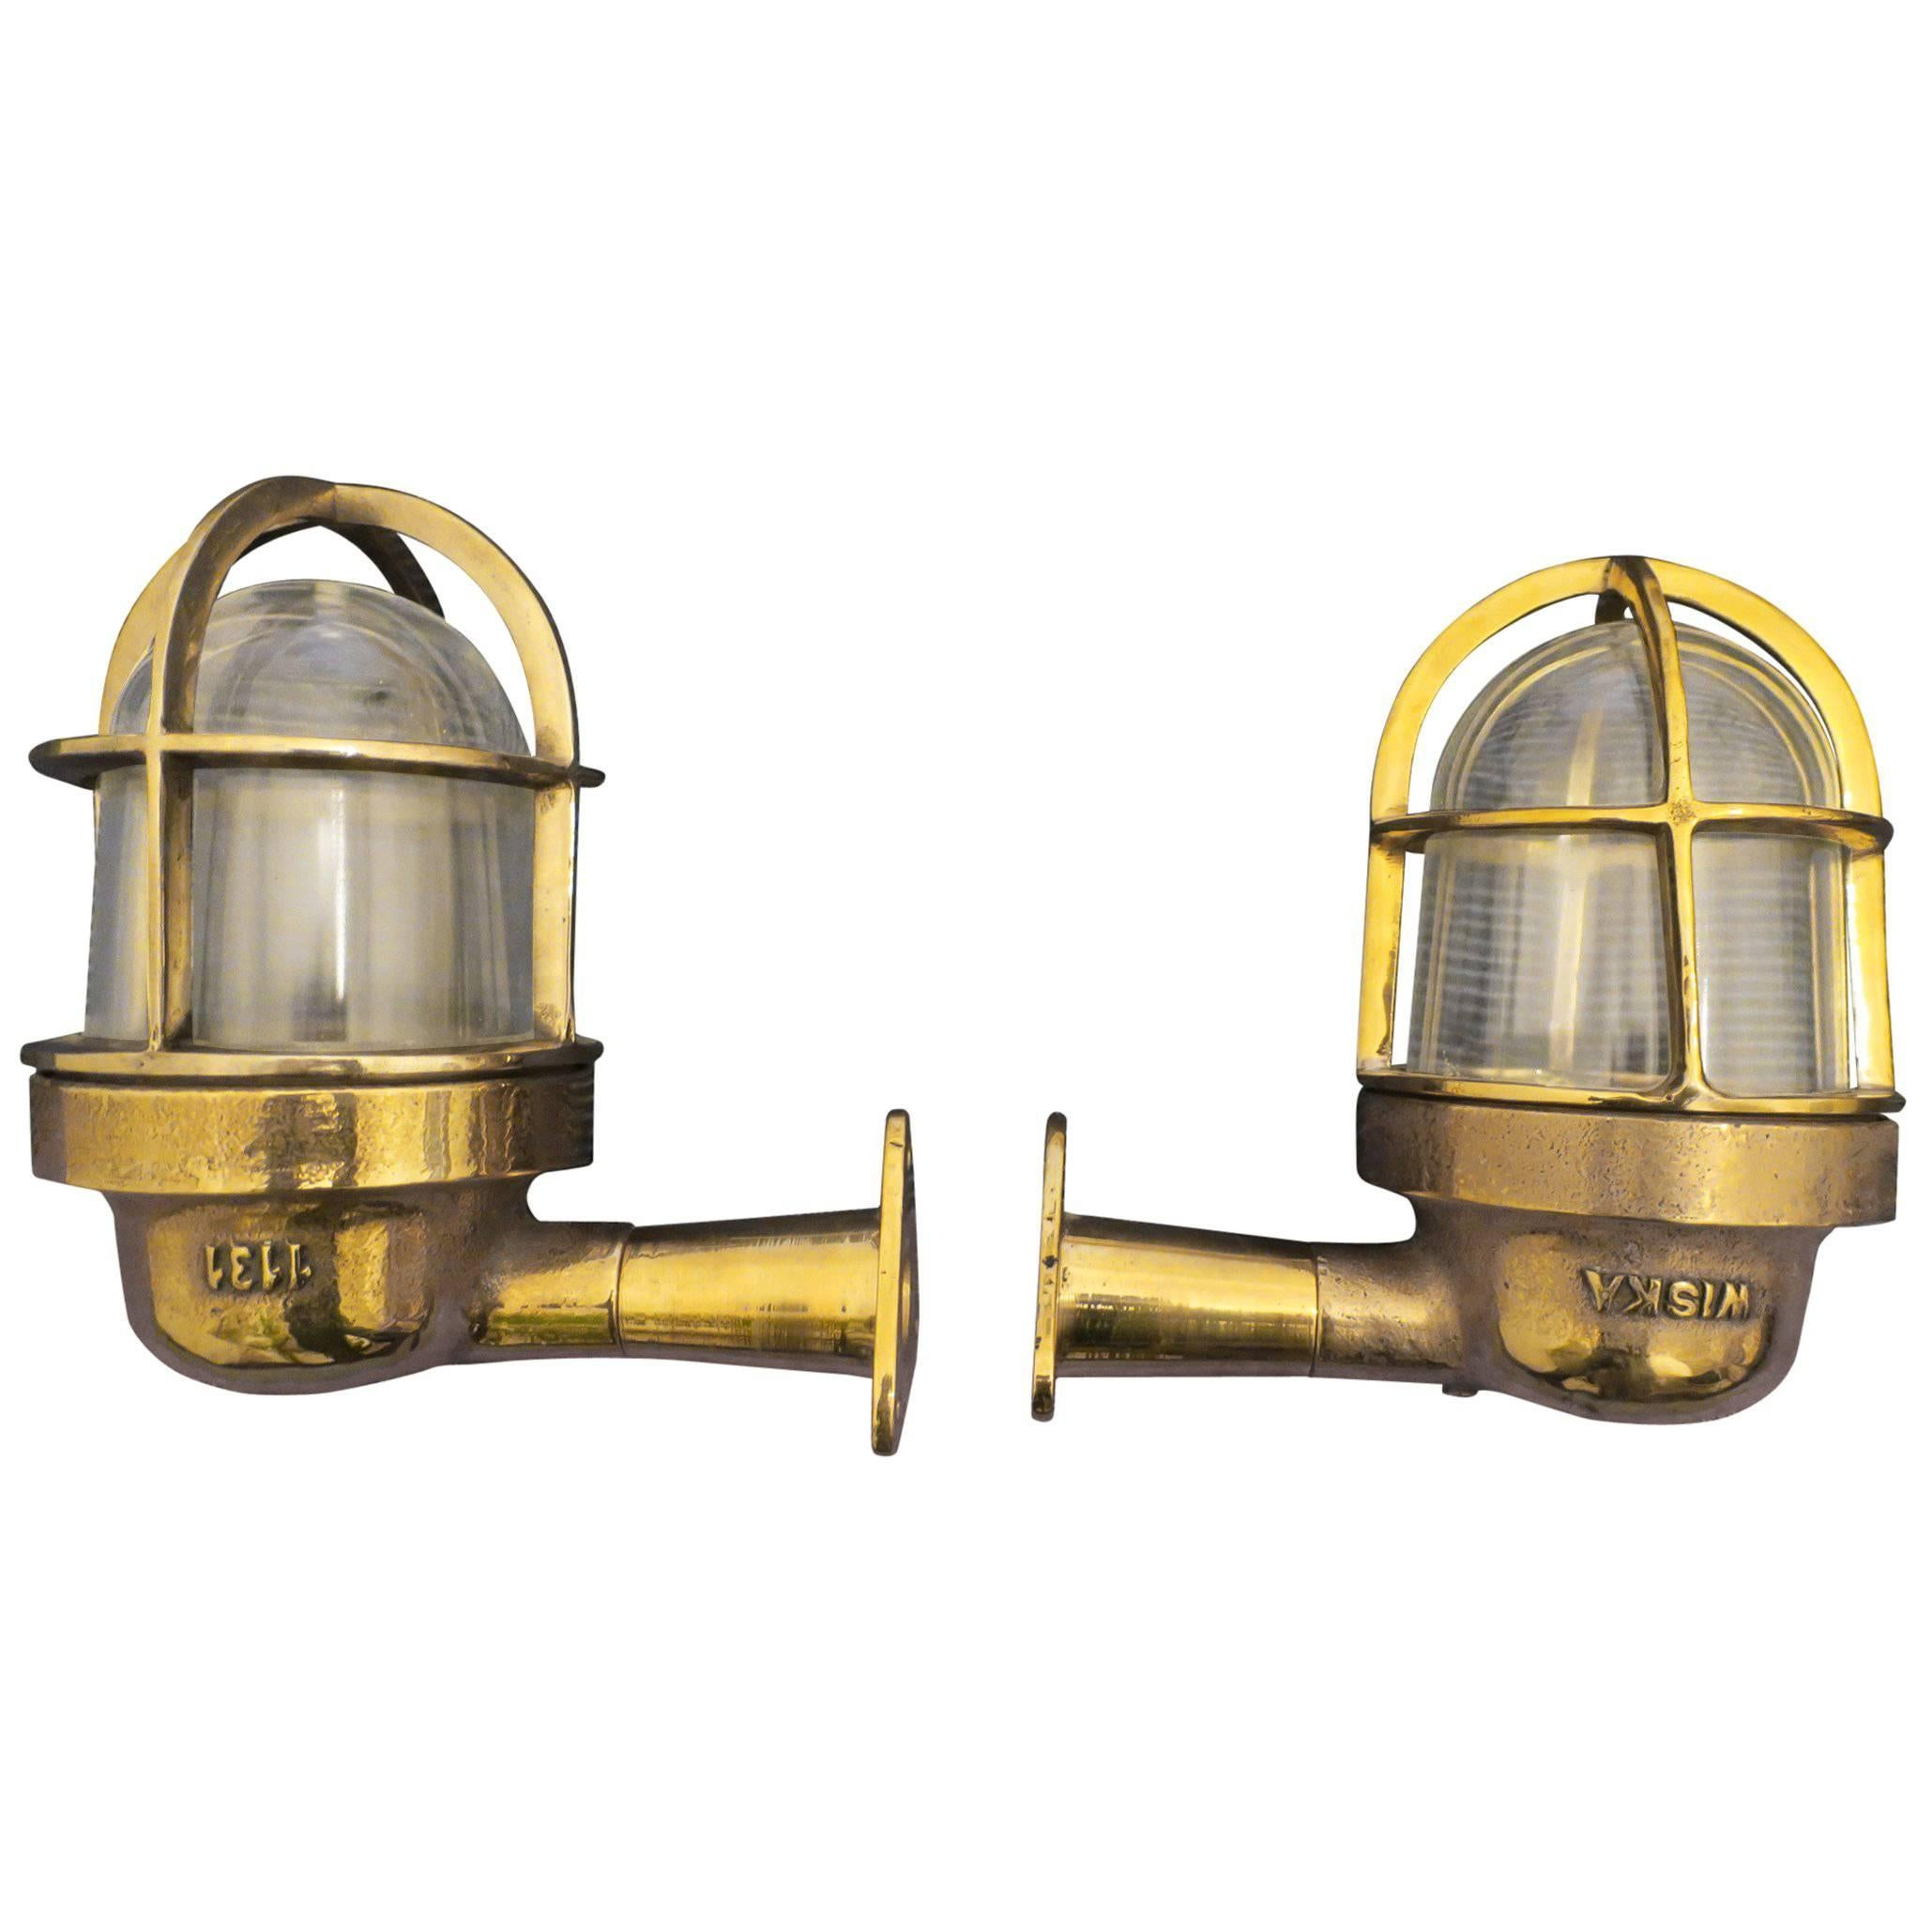 pn hudson com cfm item wall inch new nautical valley wide canaan sconce lighting capitol sconces